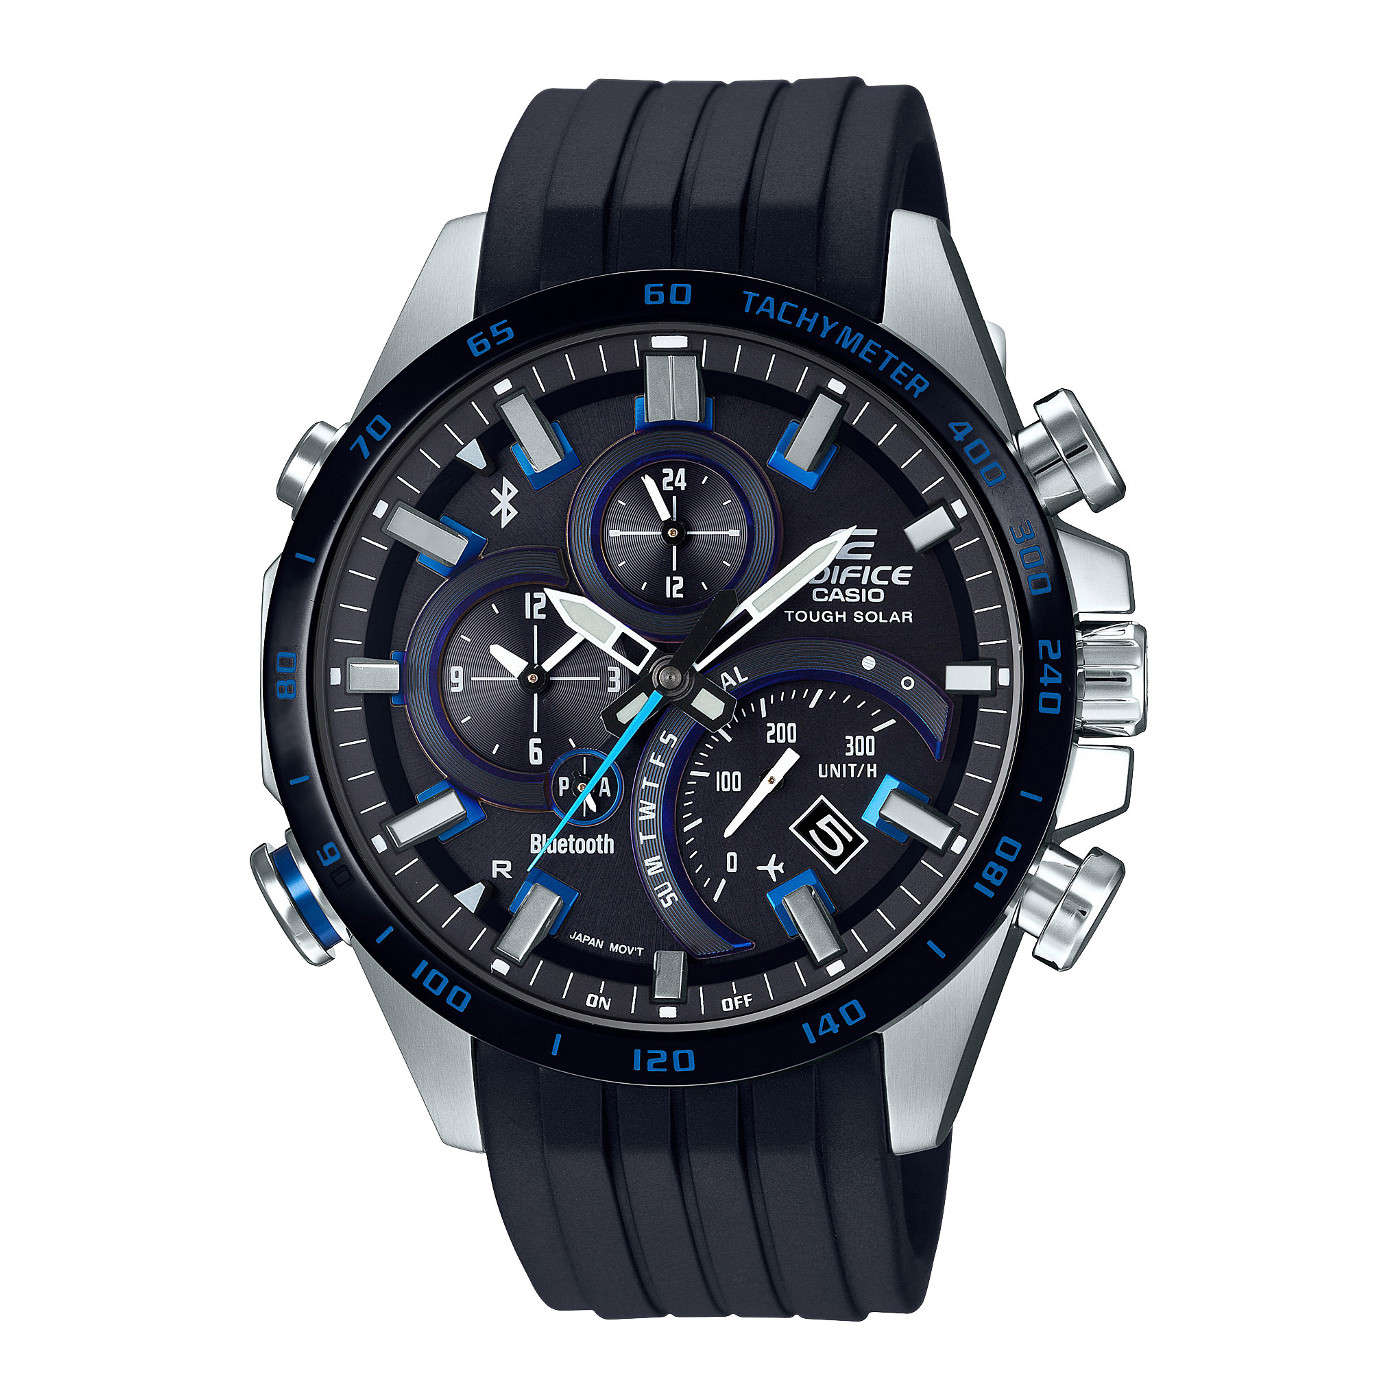 Afbeelding van Edifice Bluetooth Connected horloge EQB 501XBR 1AER